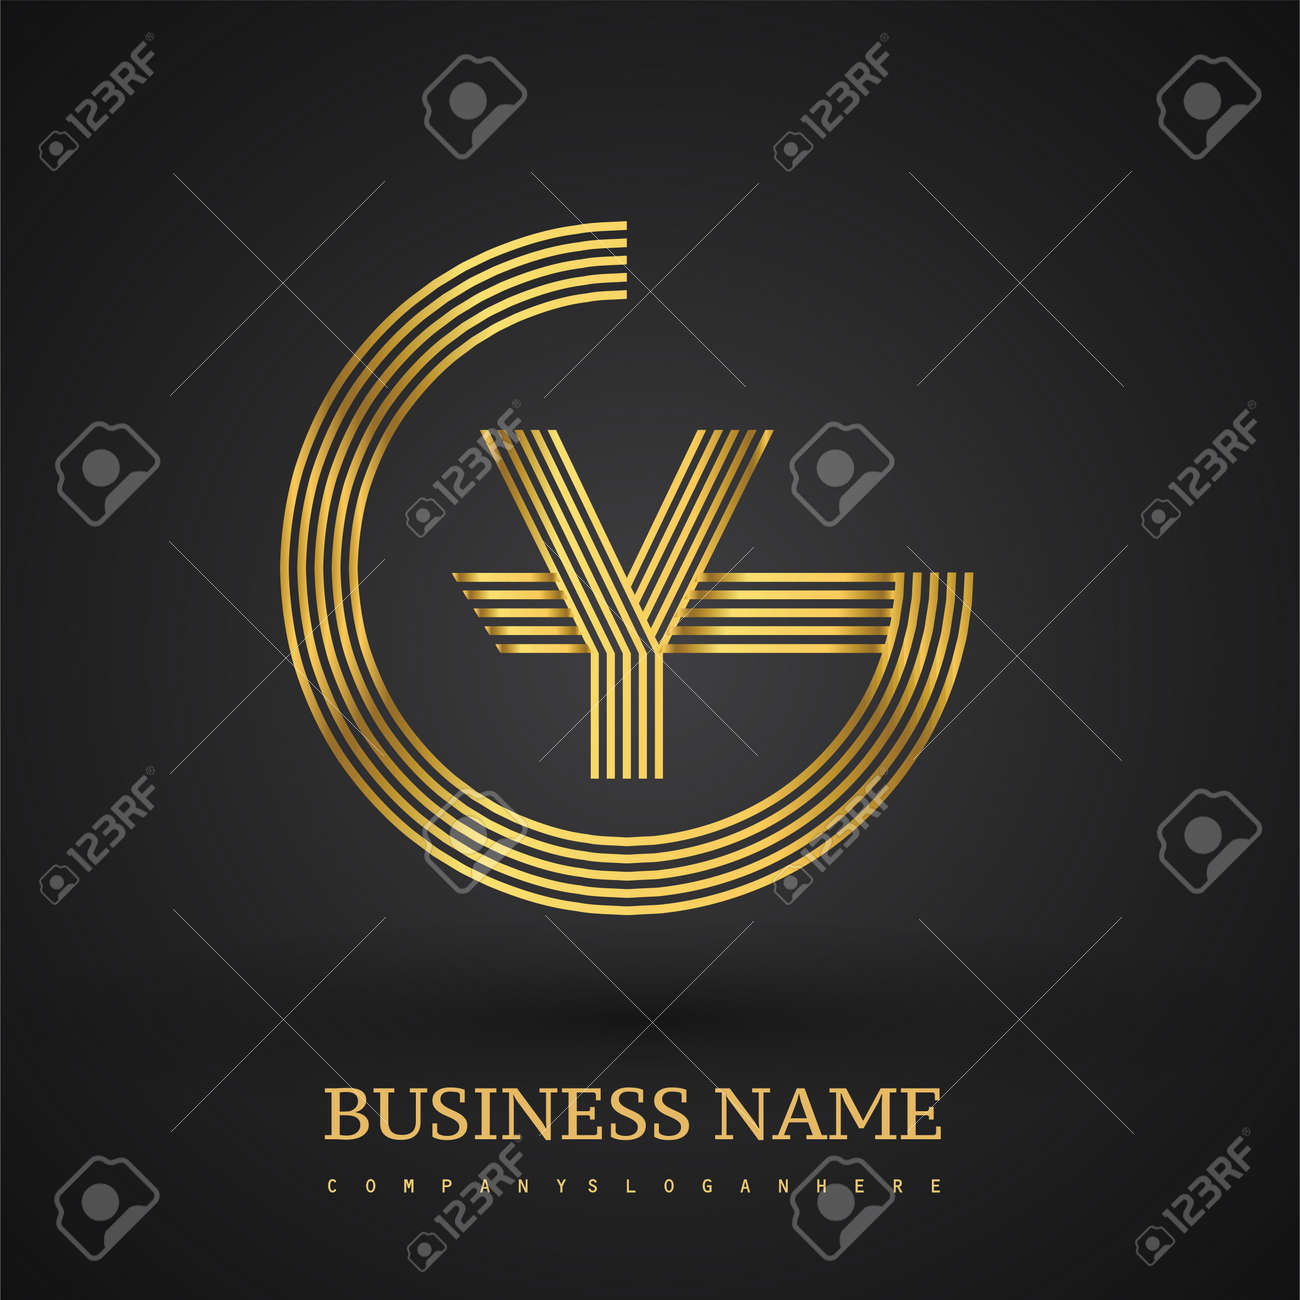 Letter GY linked logo design circle G shape. Elegant golden colored, symbol for your business name or company identity. - 159300178